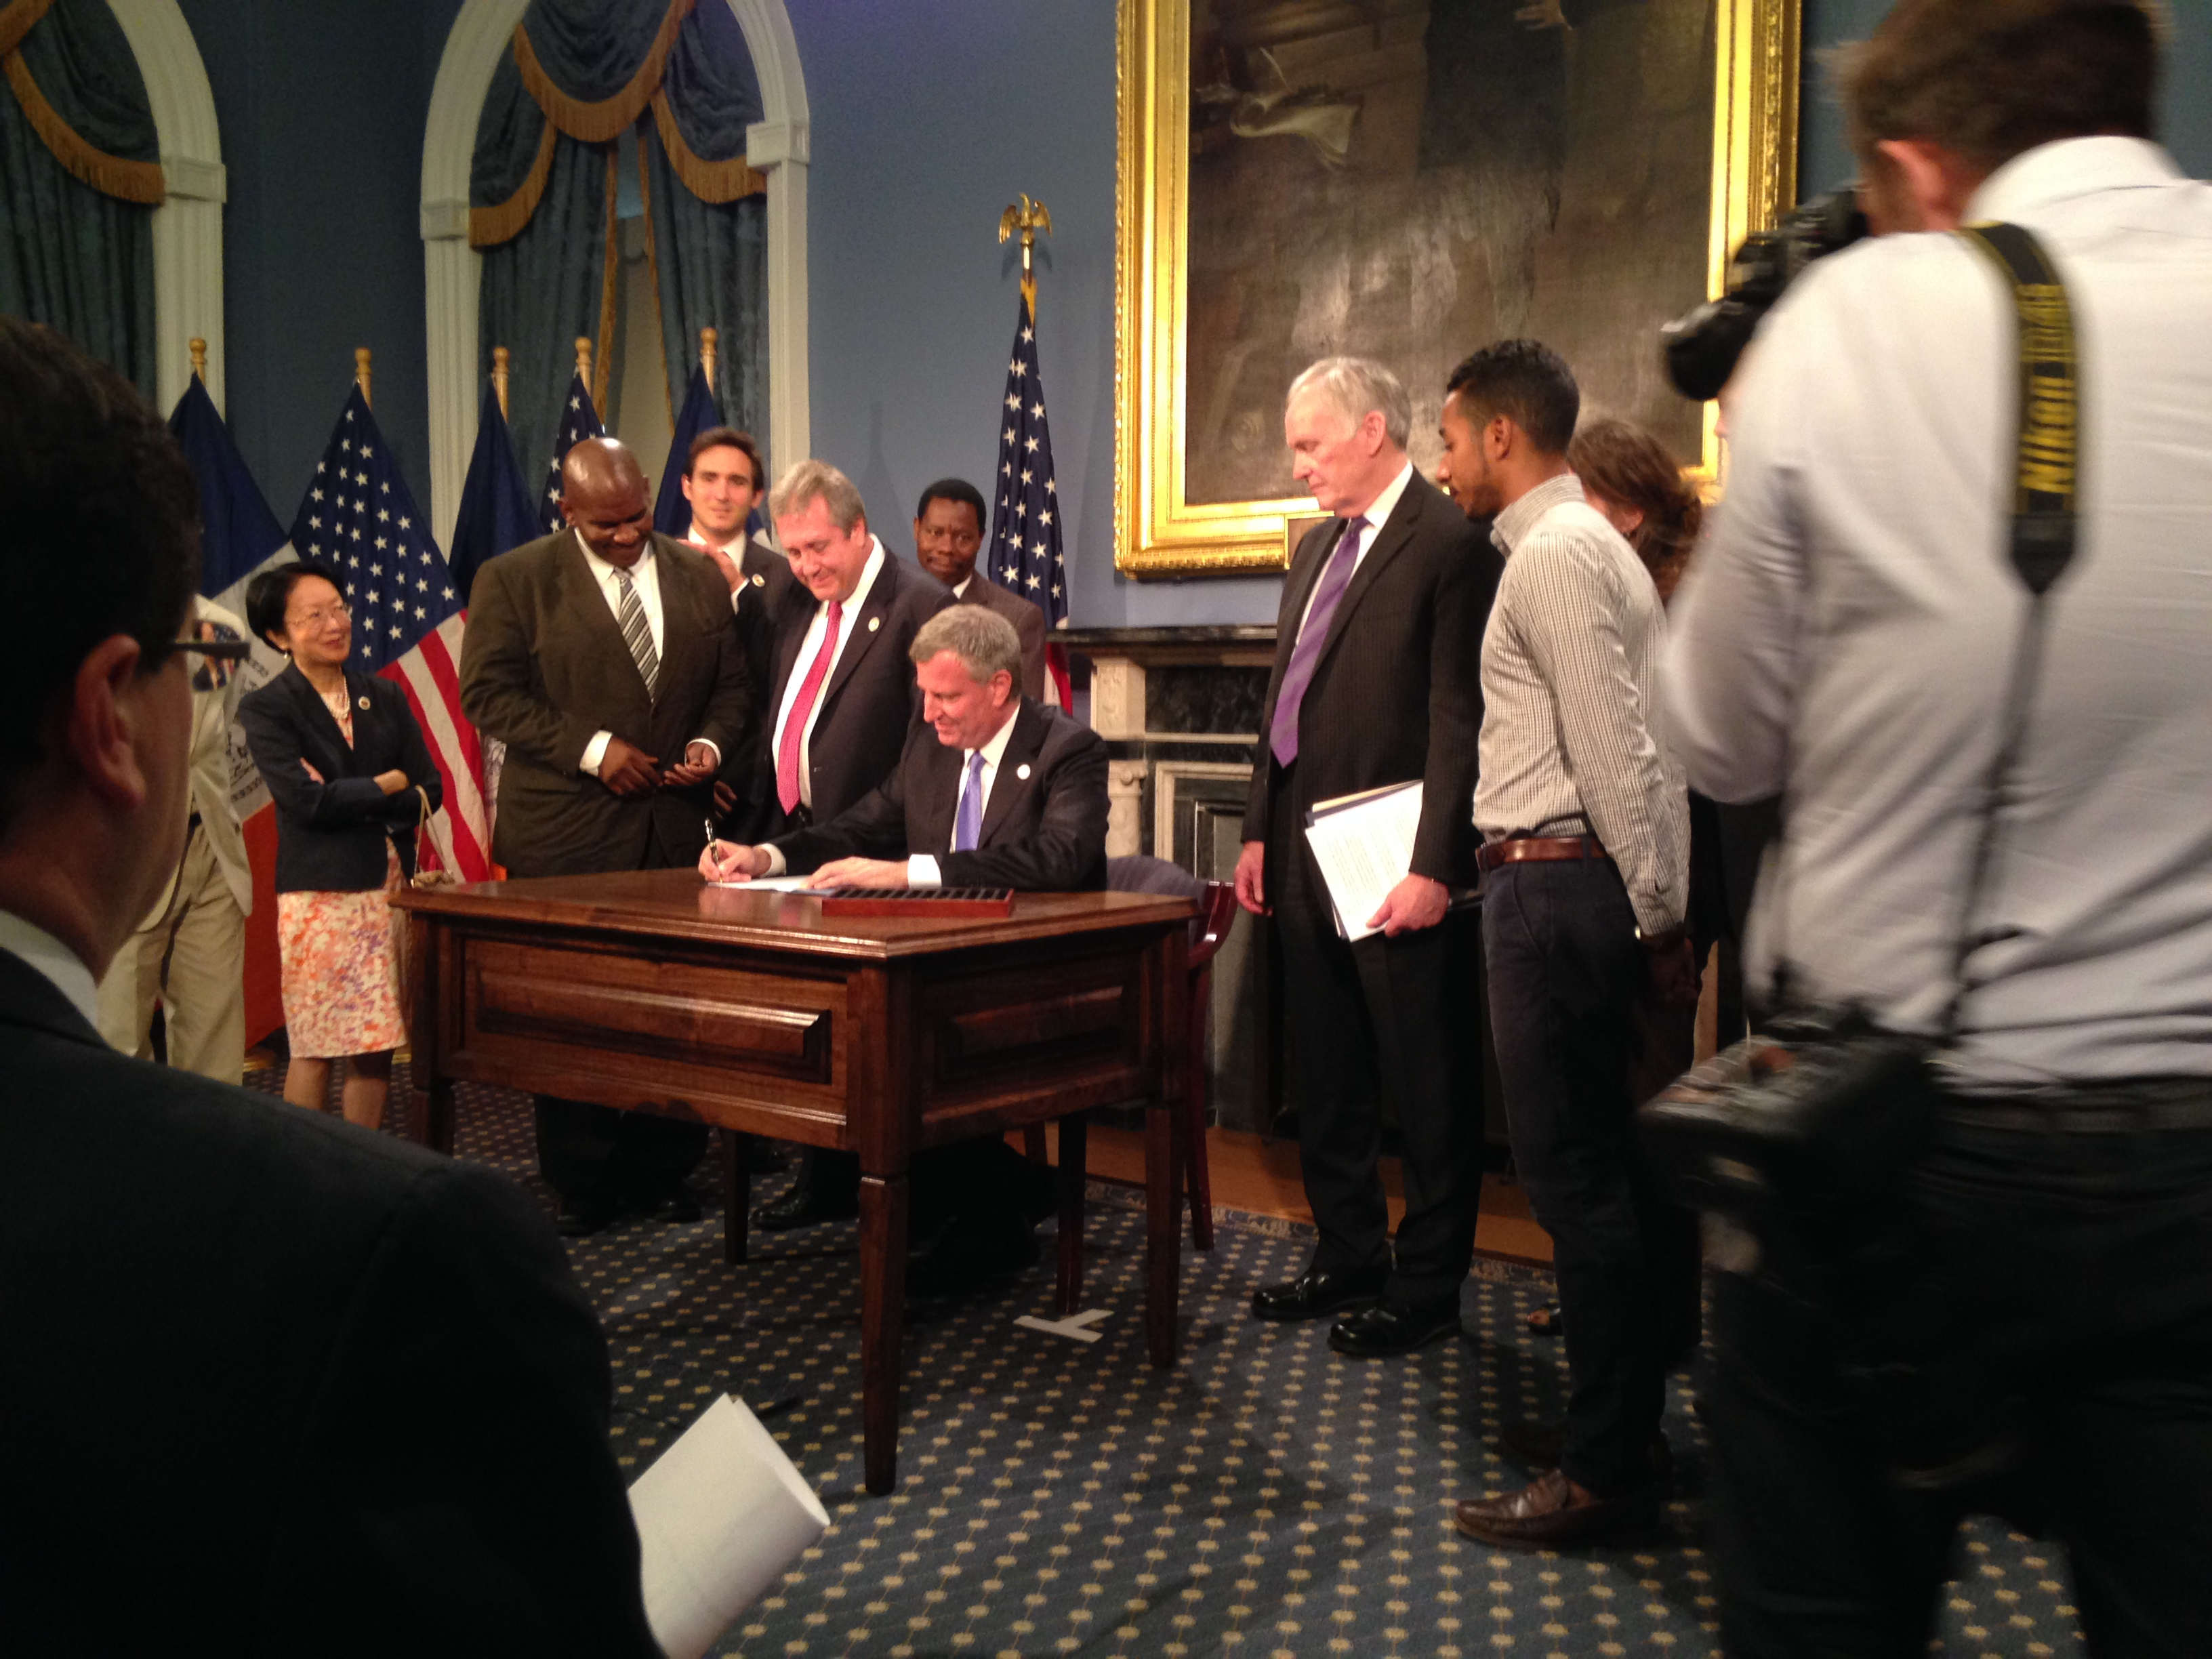 An important legislative step to bring transparency to the use of solitary confinement